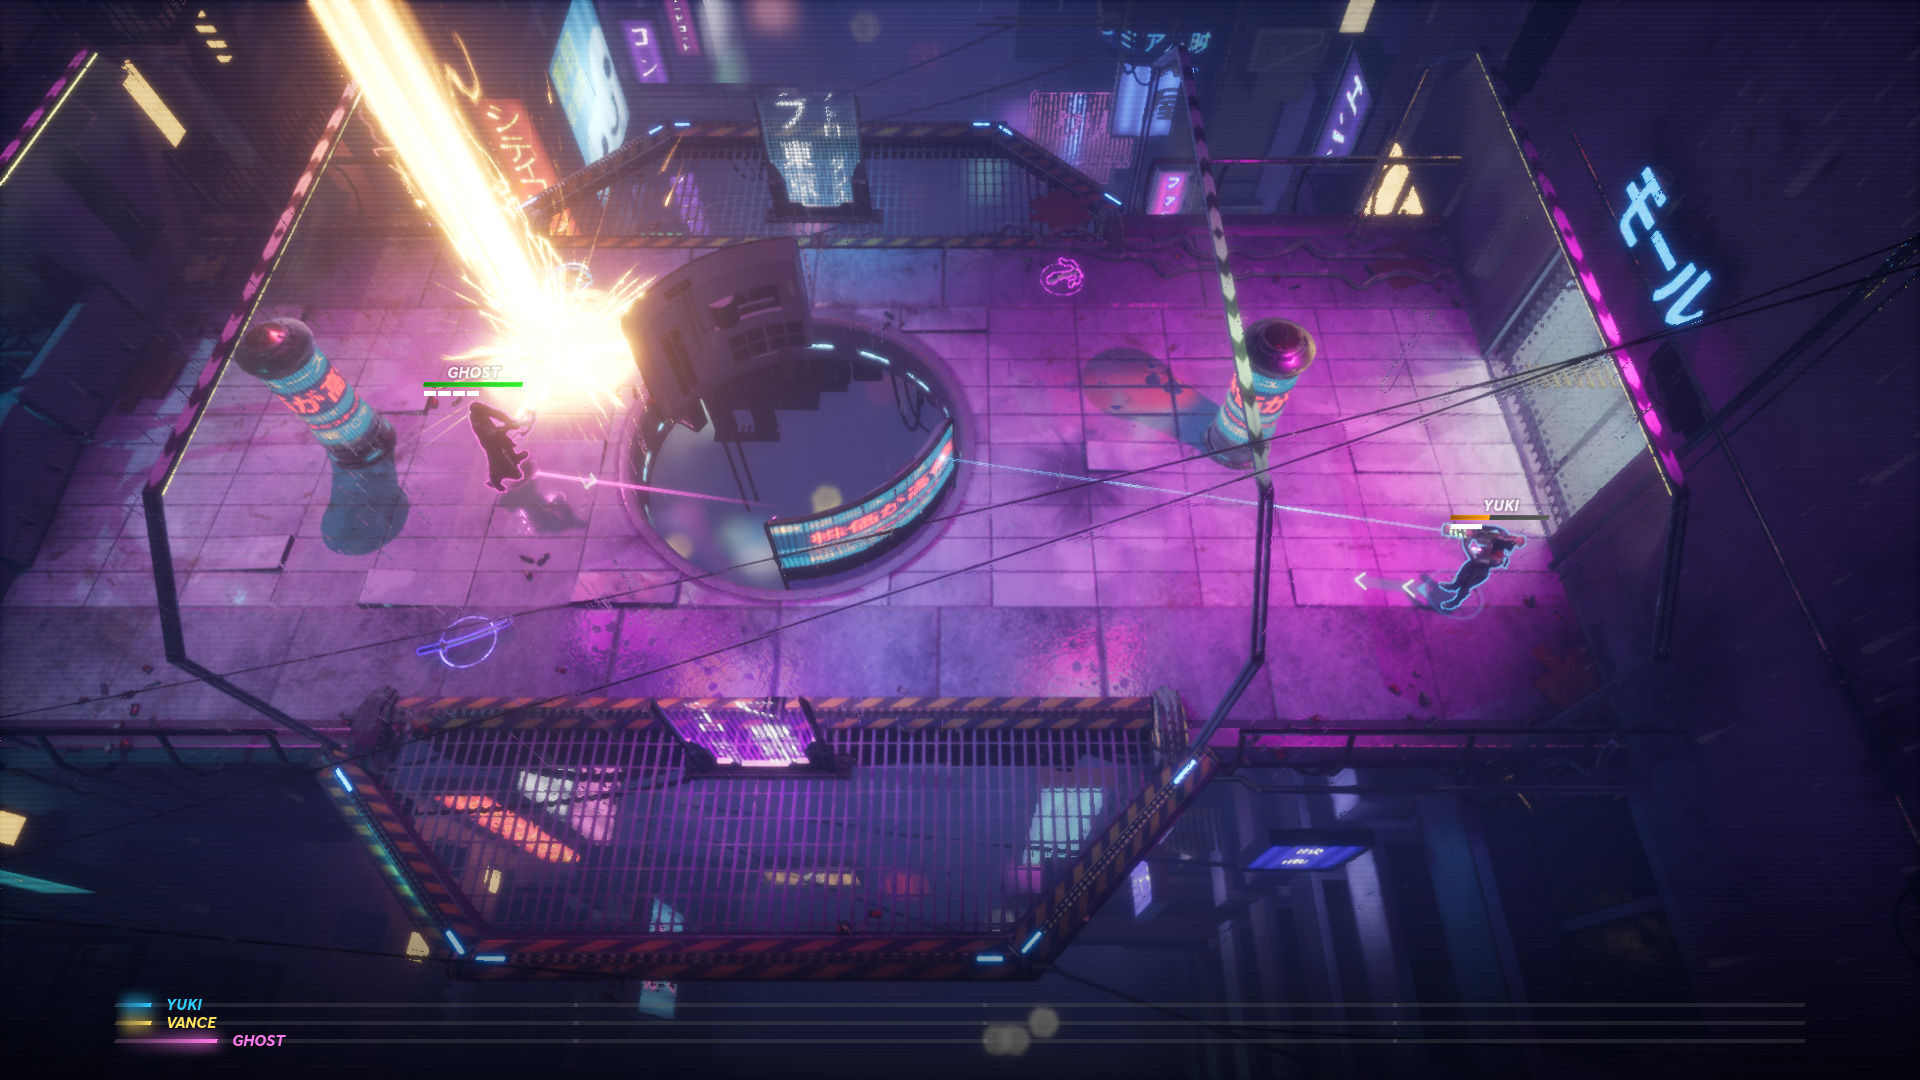 Hyper Jam out now for PC, PS4 & Xbox One